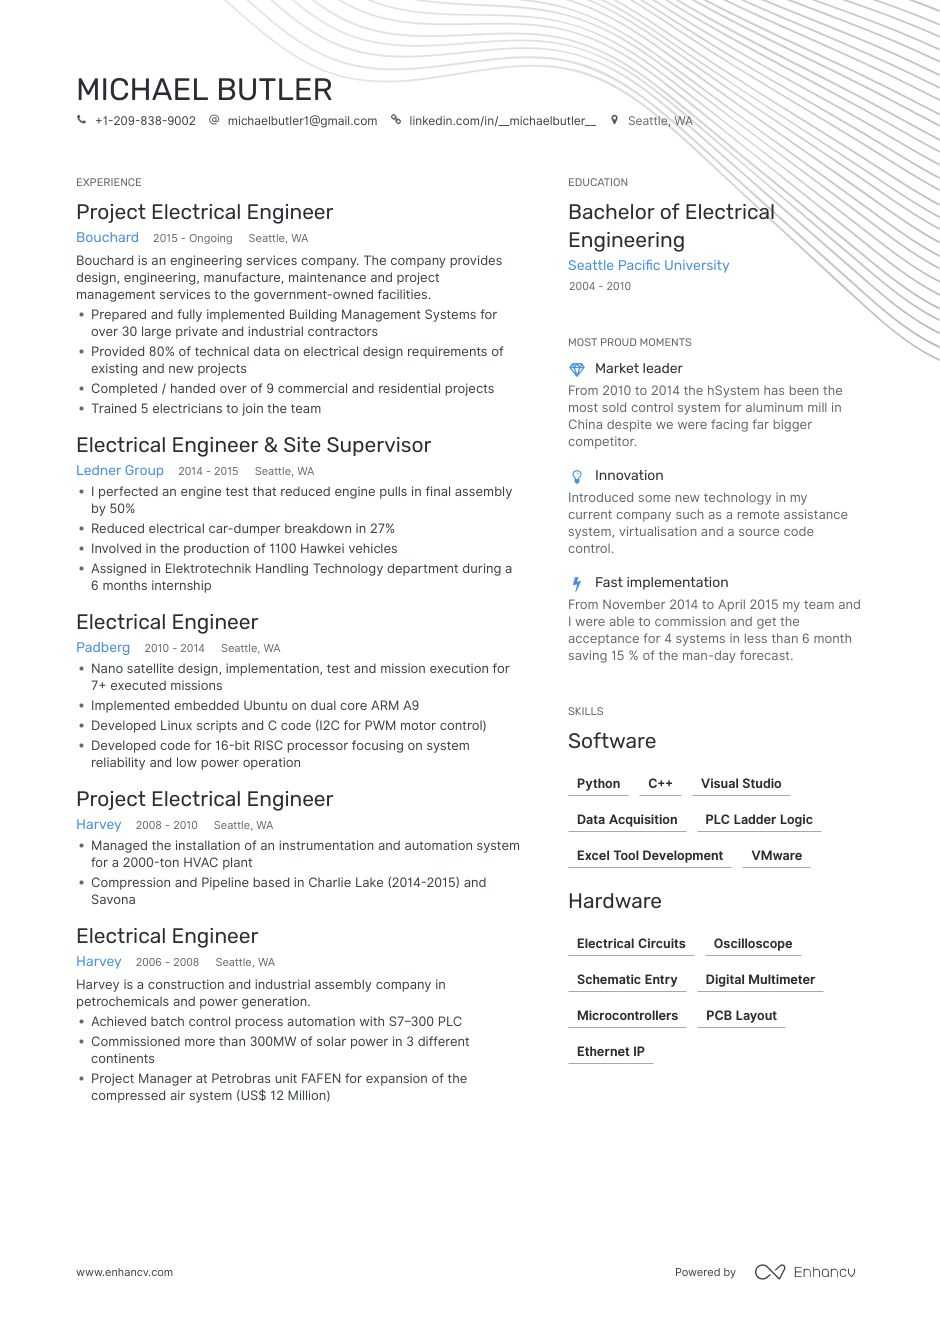 electrical engineer resume examples pro tips featured enhancv entry level systems Resume Entry Level Systems Engineer Resume